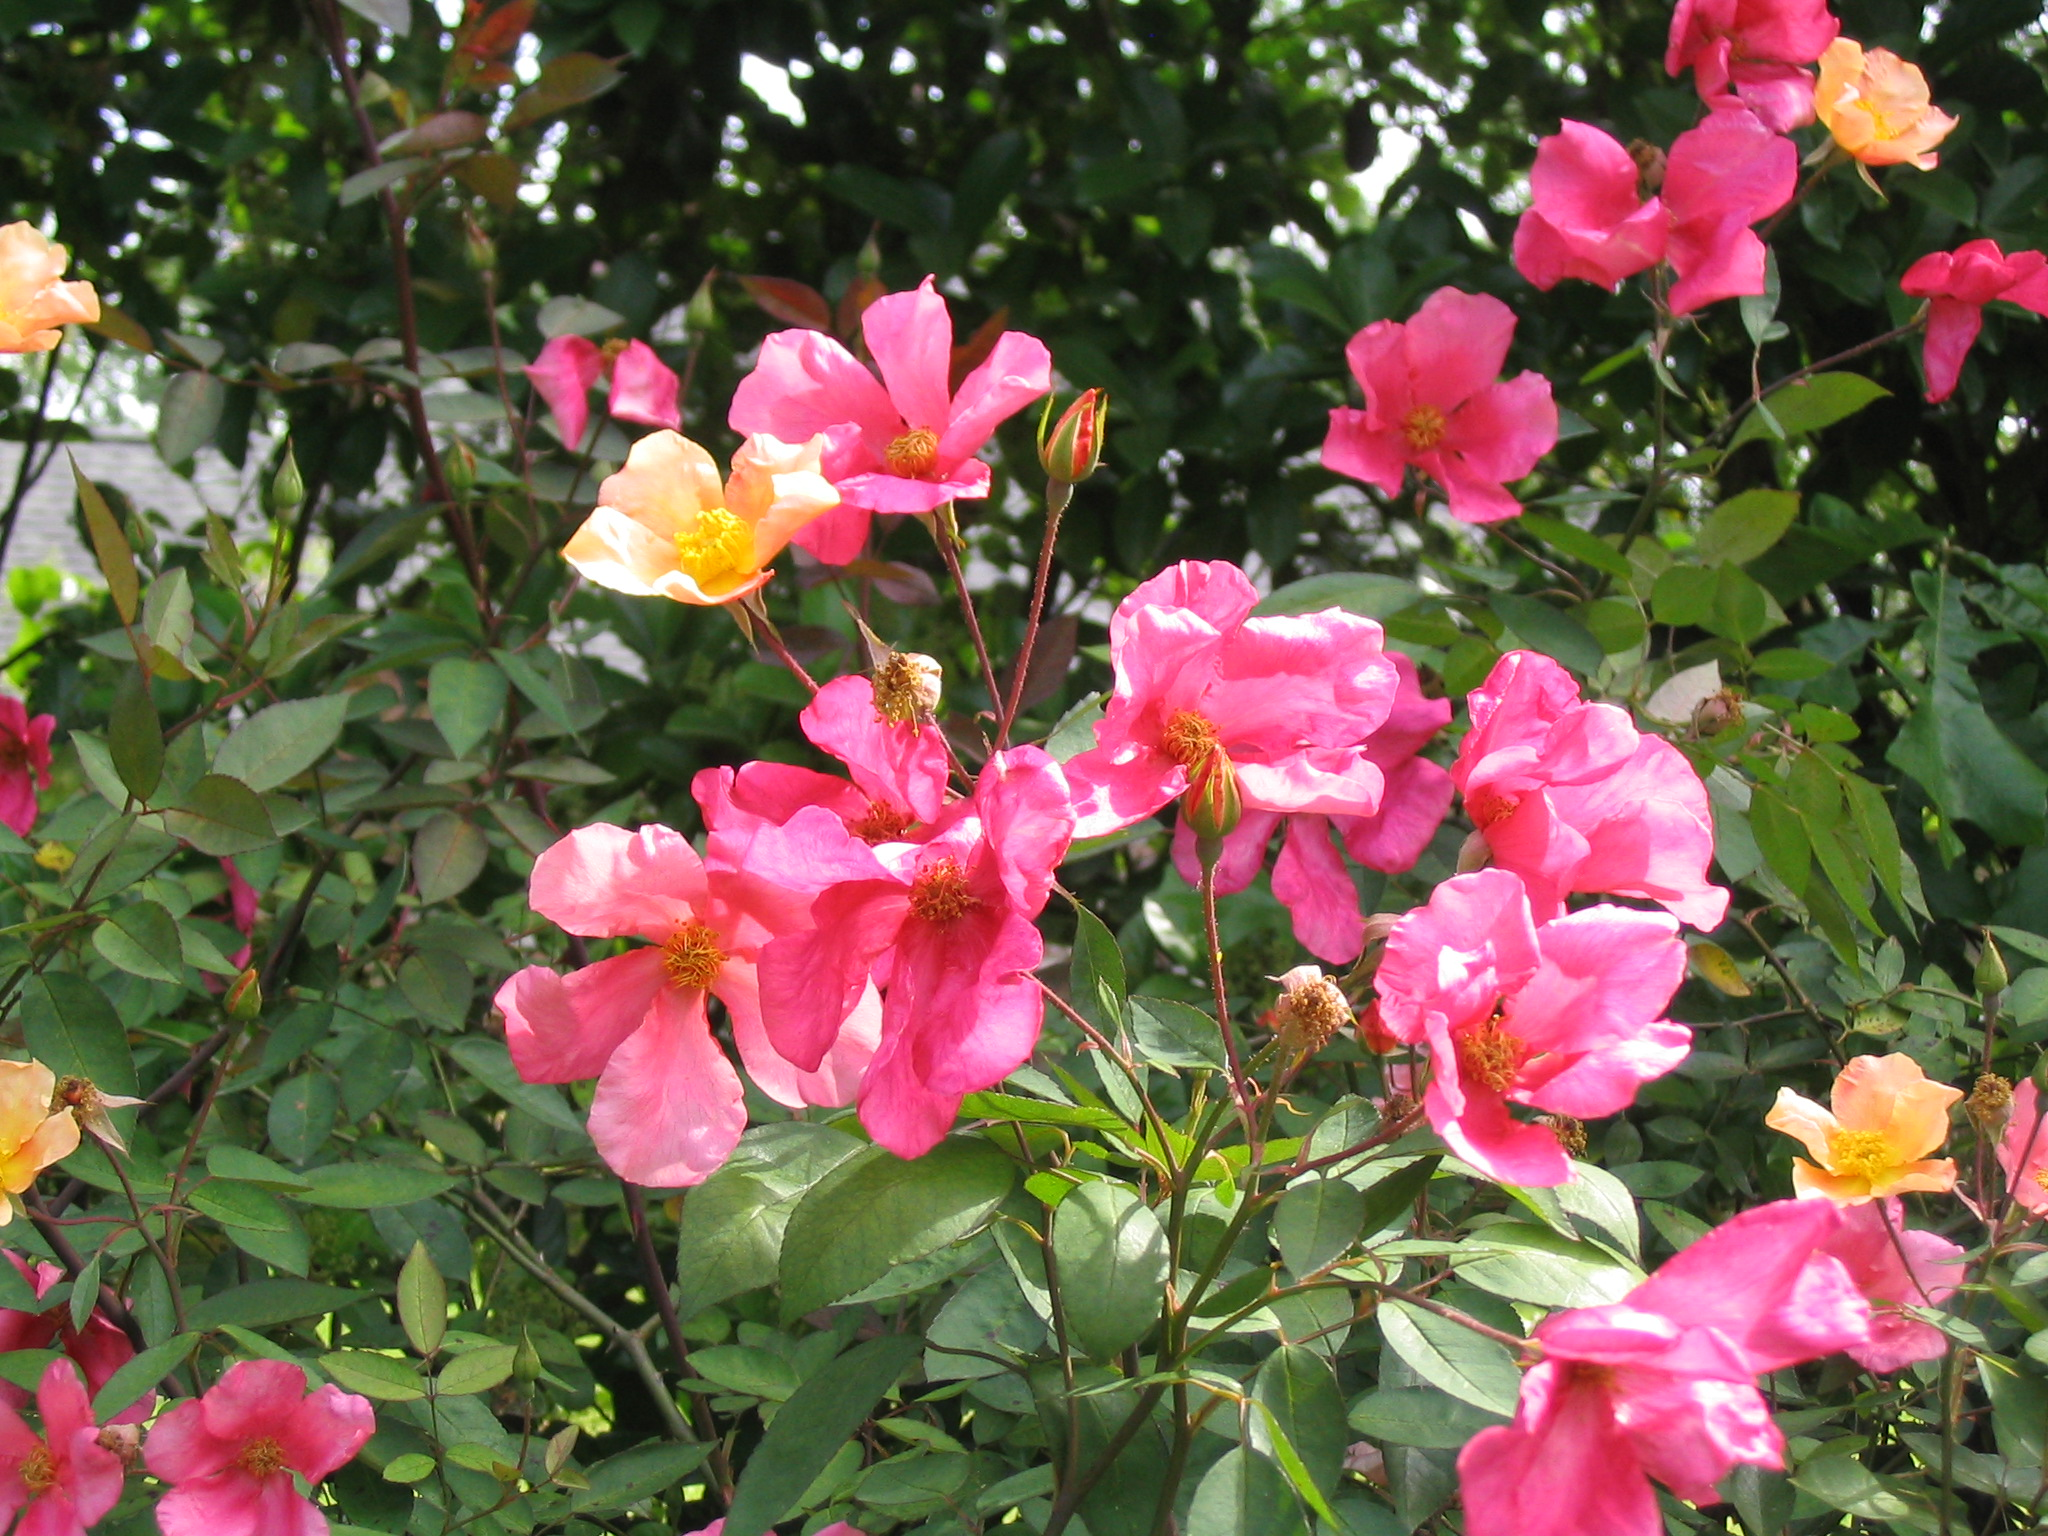 Plant roses in winter for beautiful blooms